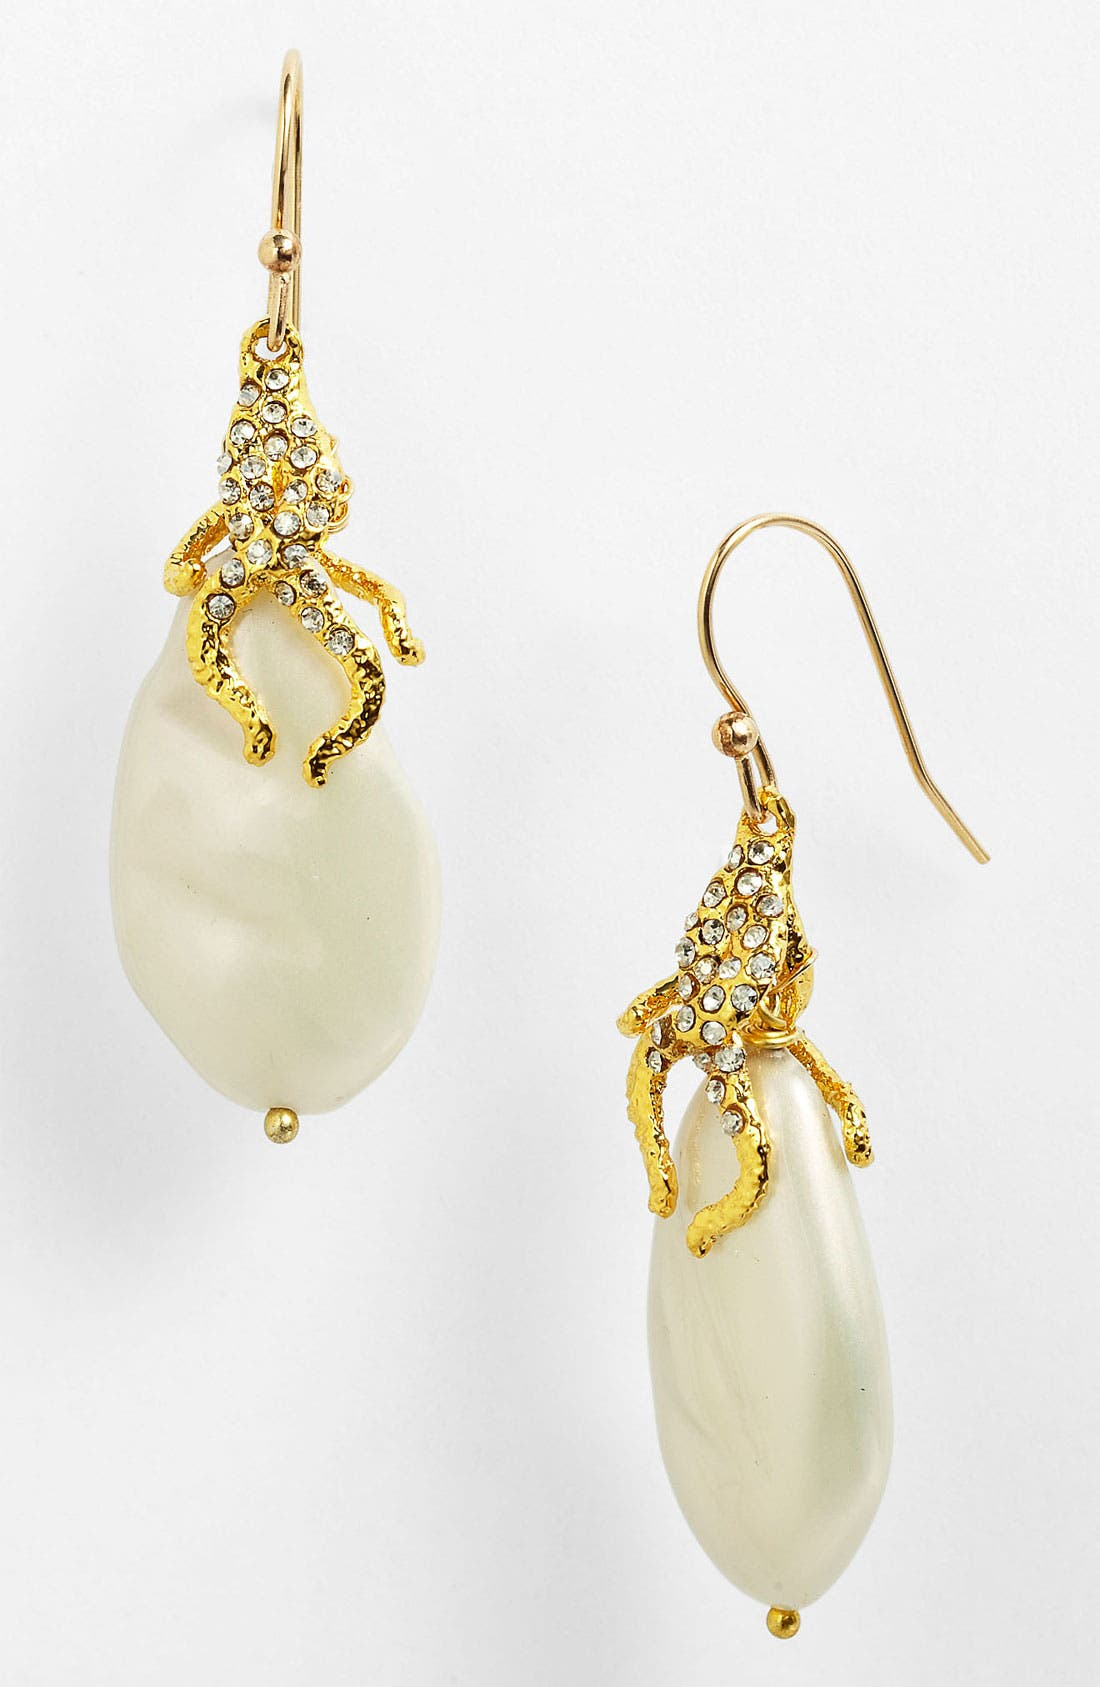 Main Image - Alexis Bittar 'Elements' Vine Capped Pearl Earrings (Nordstrom Exclusive)